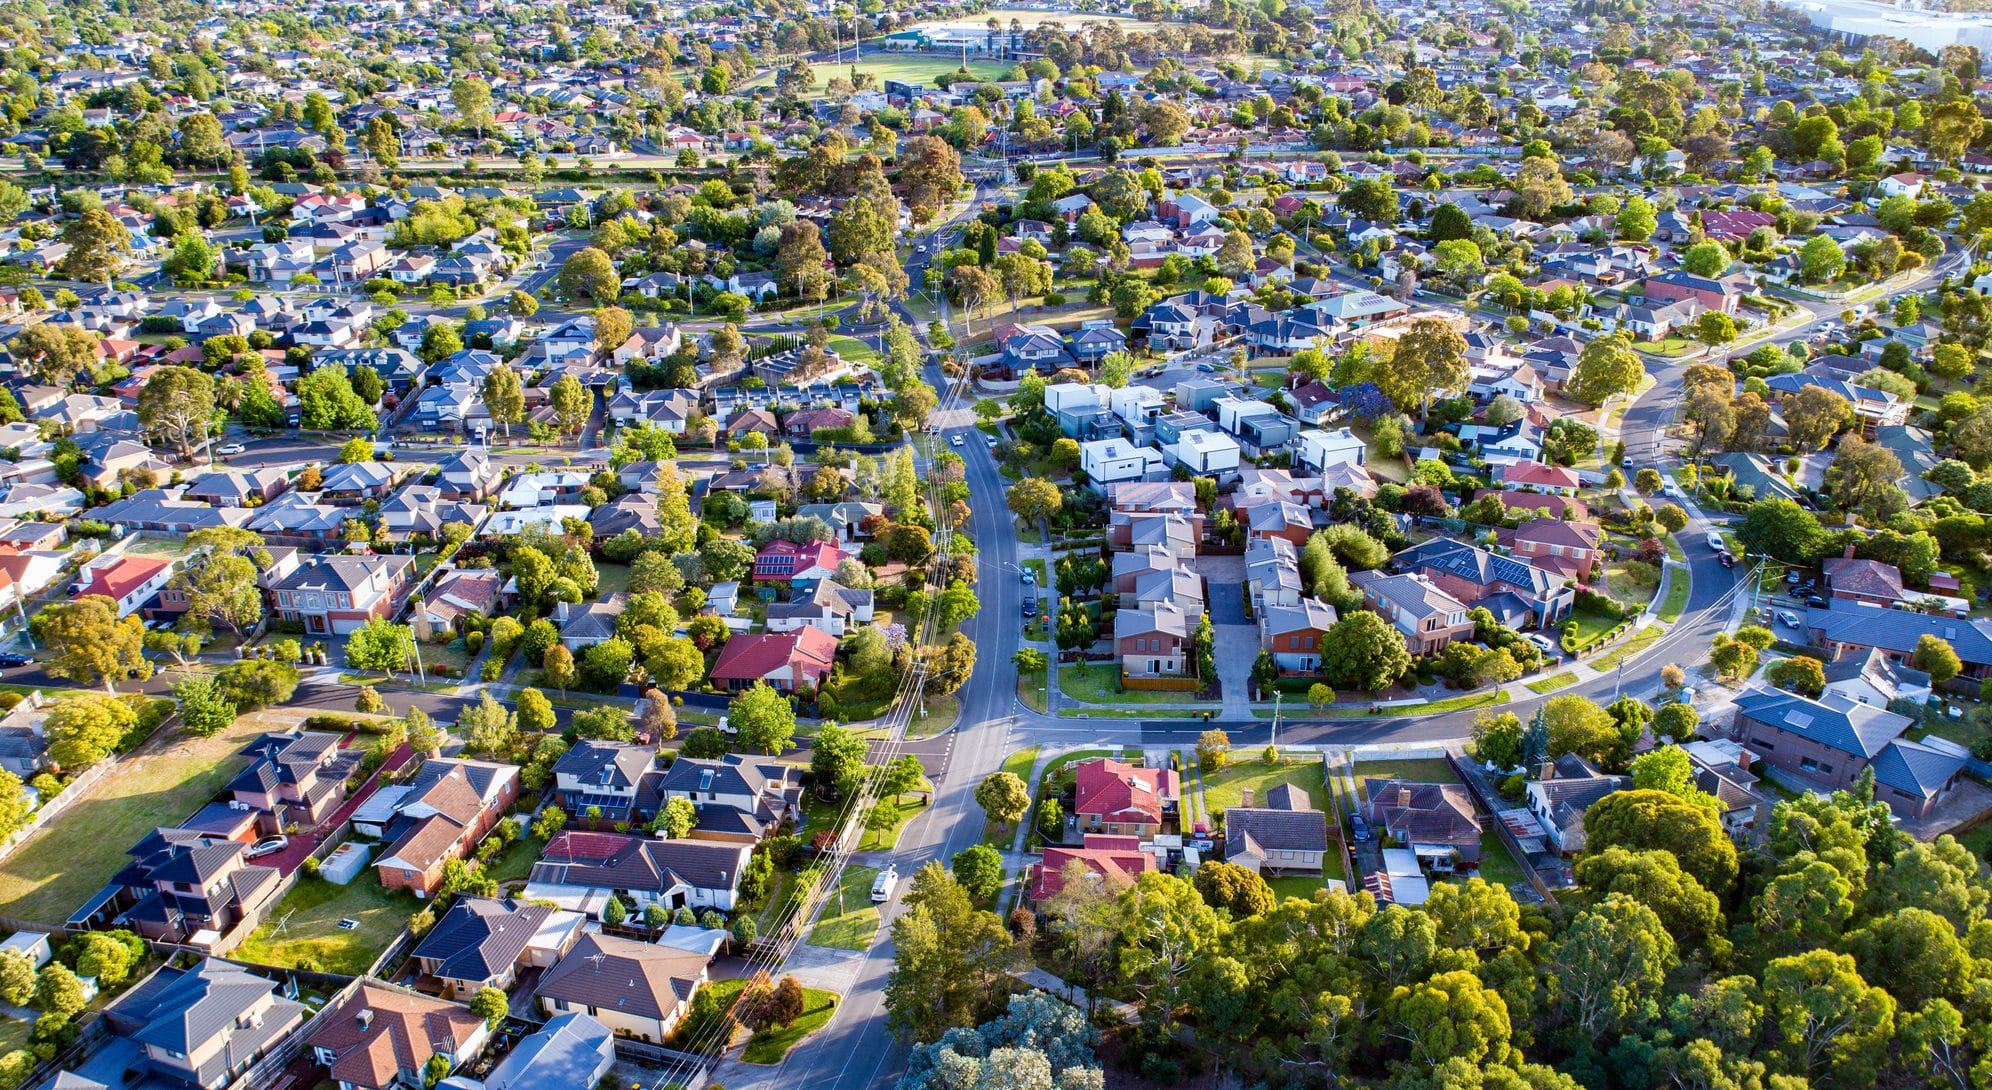 How To Win With The Right Real Estate Investment Strategy